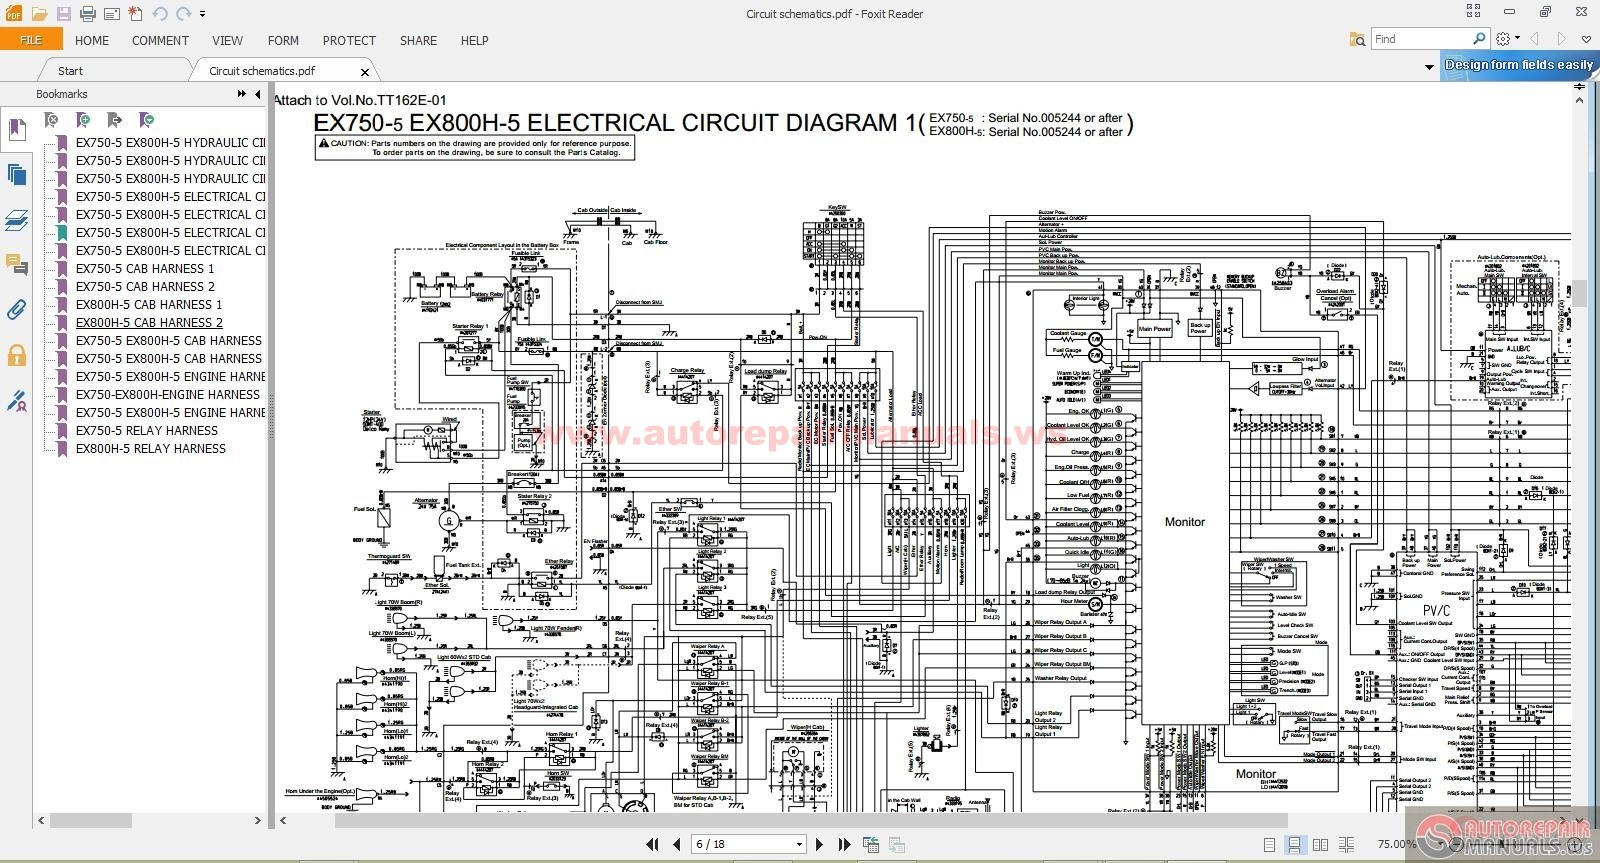 2015 Mazda 3 Fuse Diagram Starting Know About Wiring 2013 Images Gallery Keygen Autorepairmanuals Ws Hitachi Ex 750 5 800 H